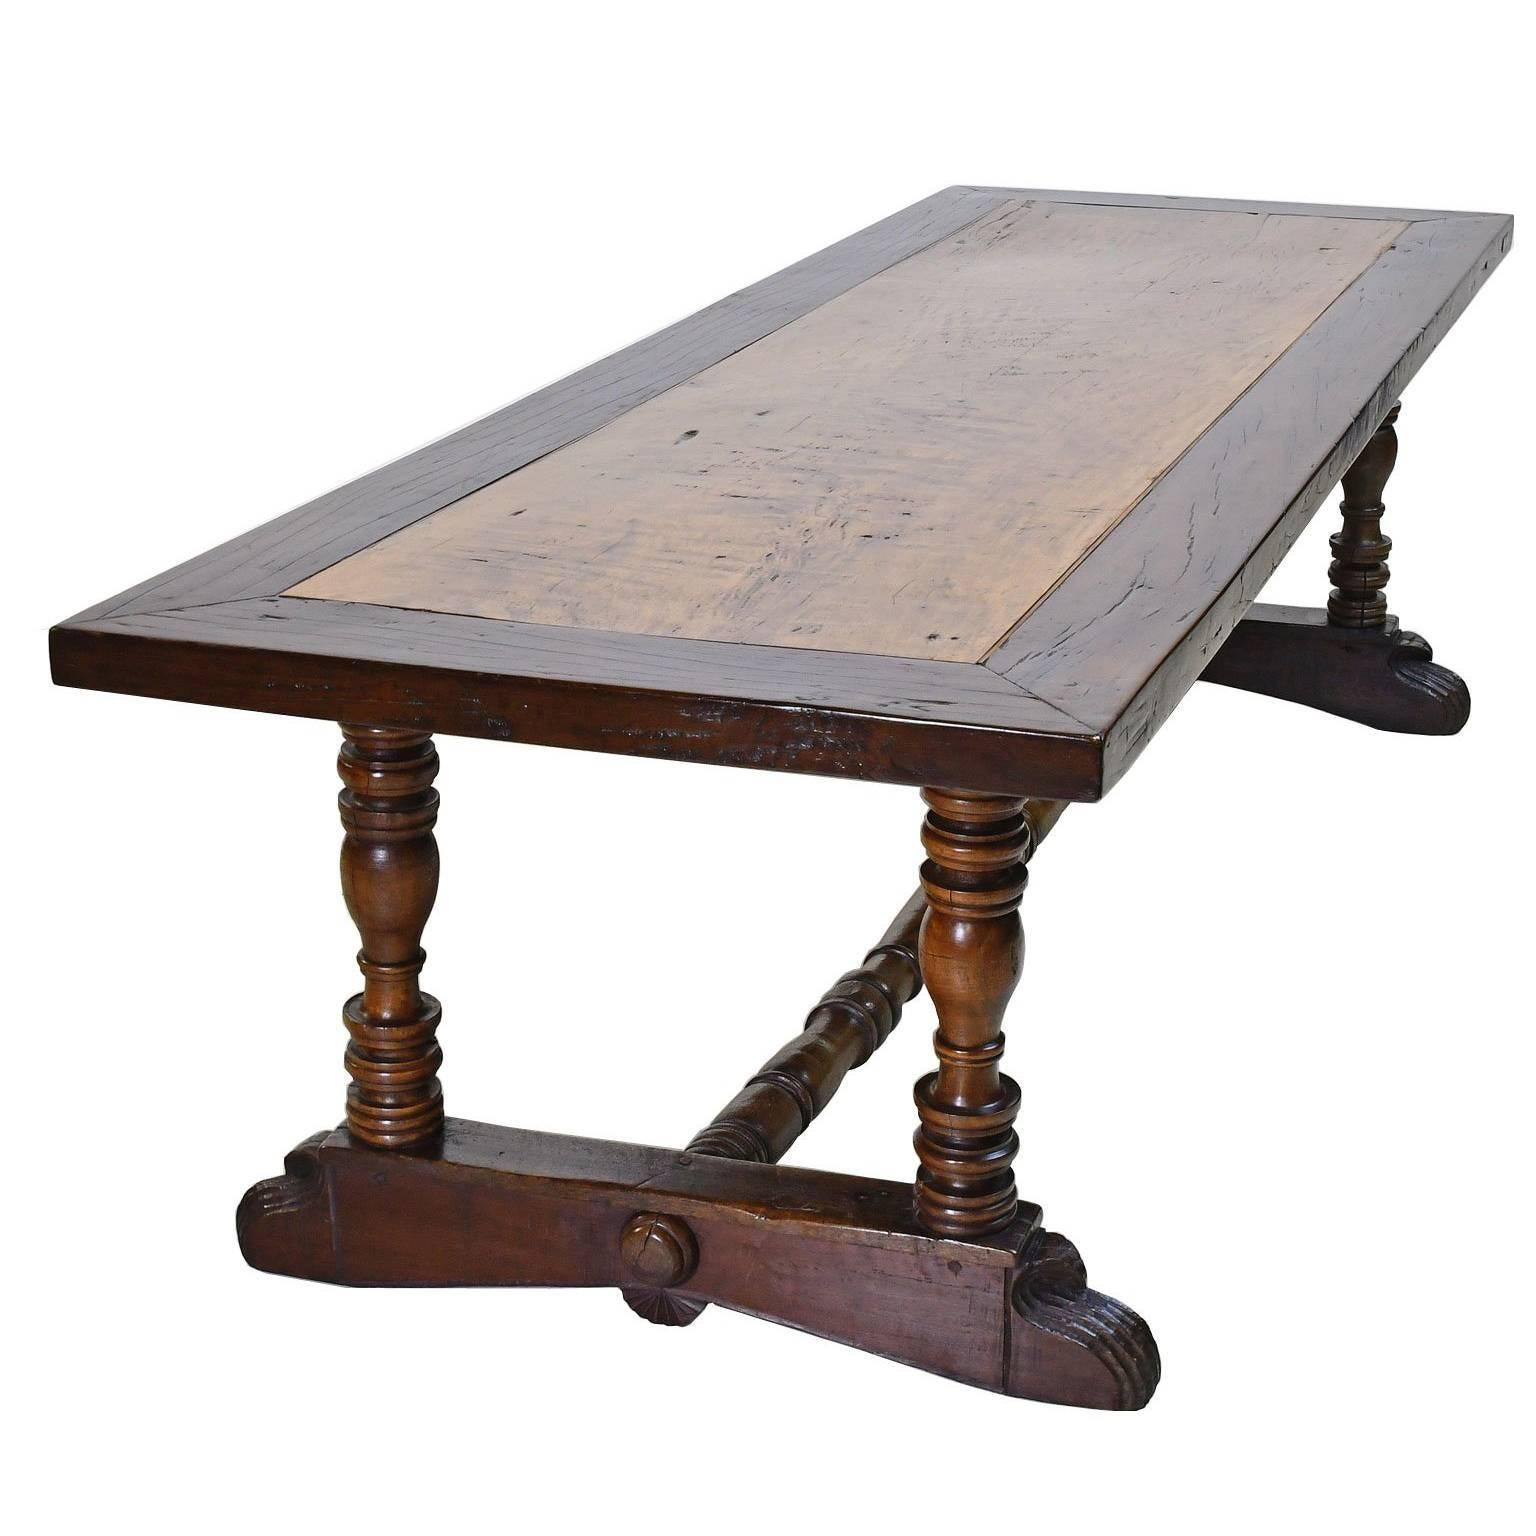 18th Century Long Spanish Colonial Dining Table With Carved Trestle Base